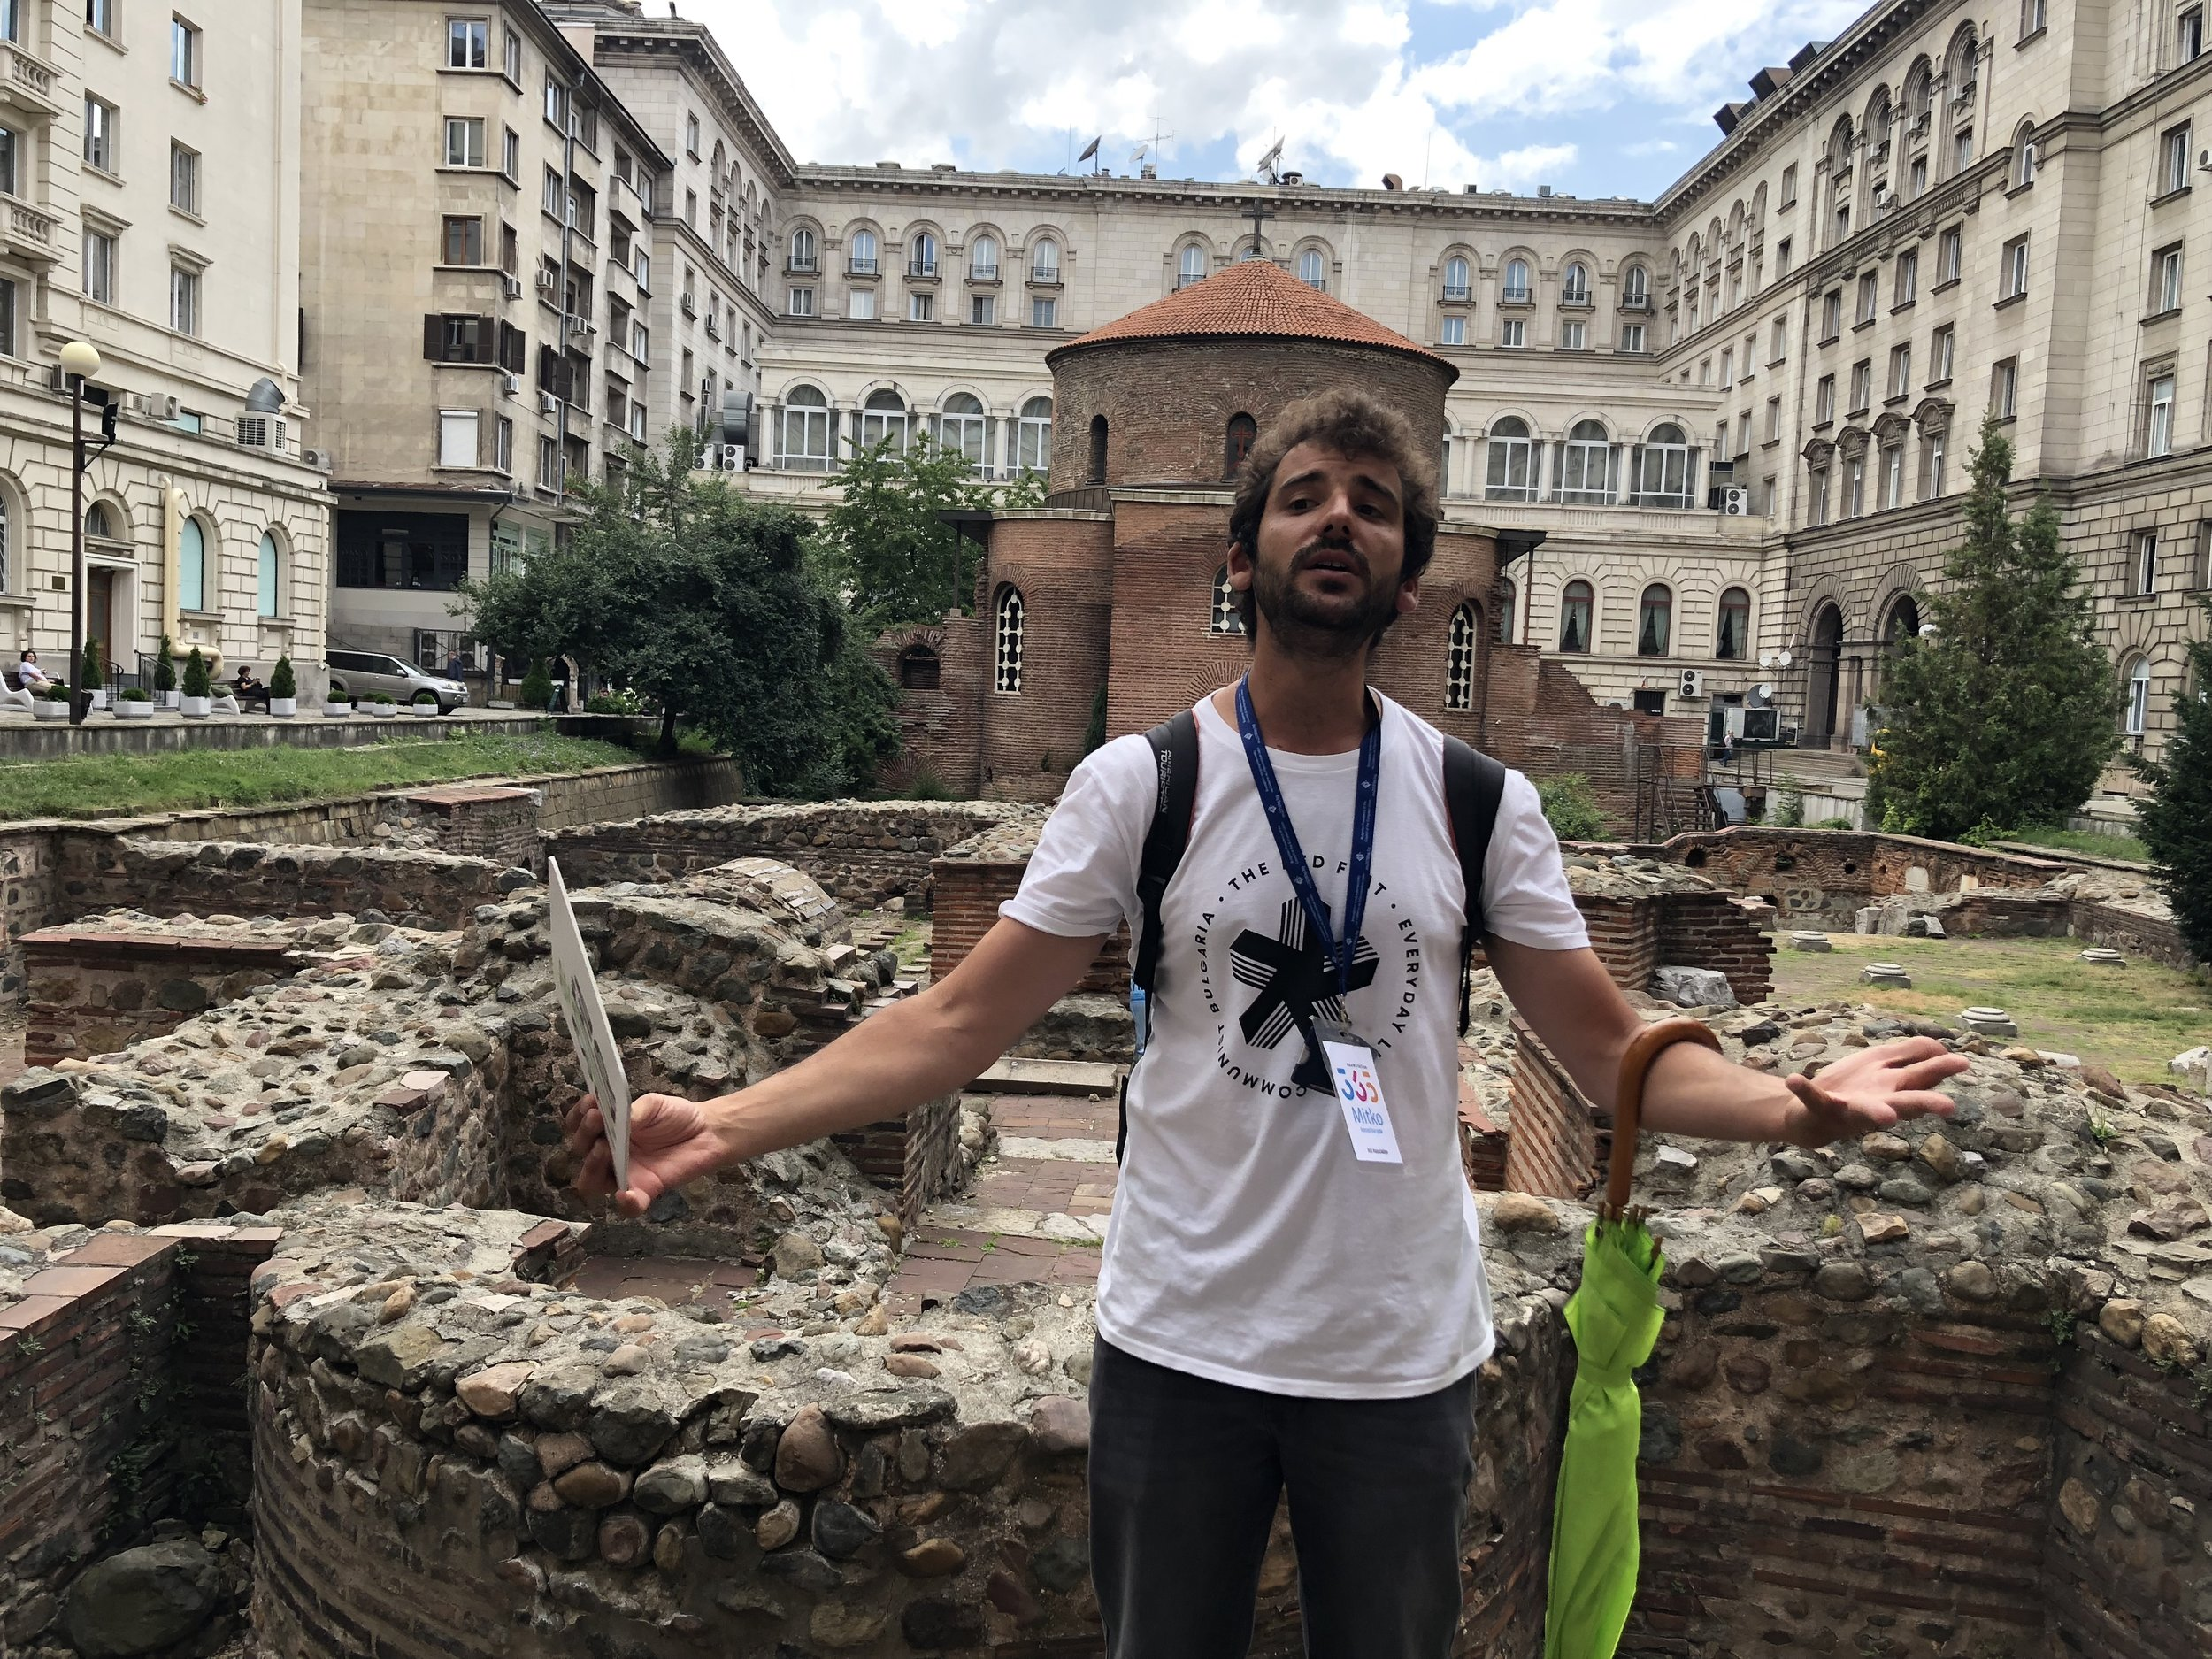 Mitko Dimitrov giving a walking tour in the center of Sofia, Bulgaria, explaining the history of the Church of Saint George, which dates back to the 4th Century and is one of the oldest buildings in Sofia.